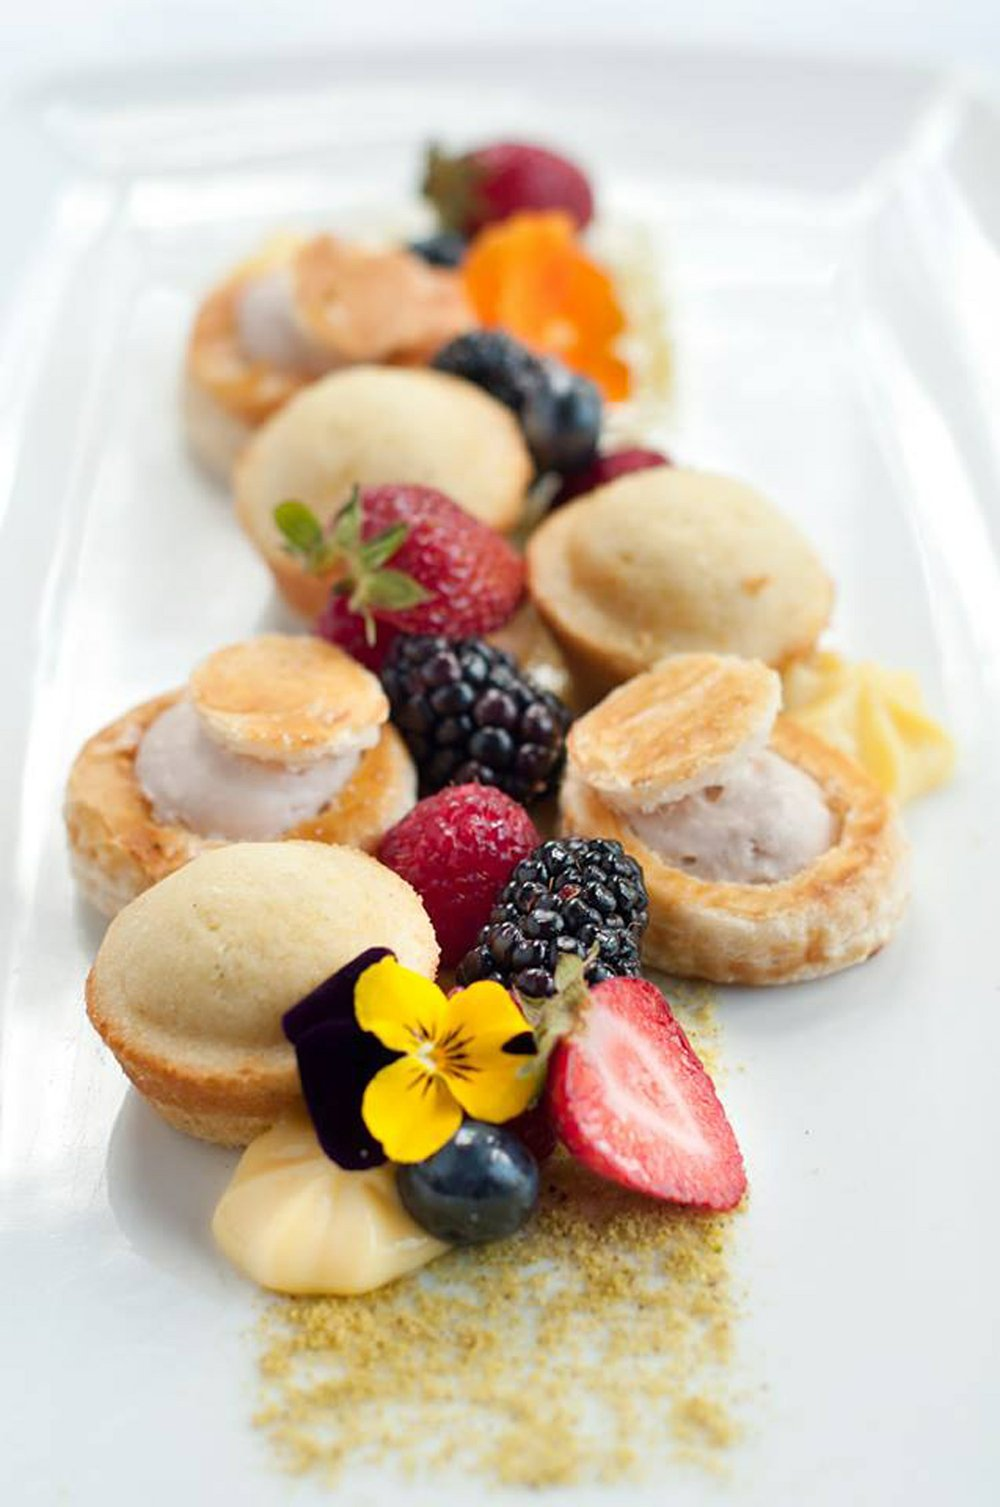 Brandon Hernandez applauds A.R. Valentien's elegant desserts, such as these Meyer lemon baby cakes.